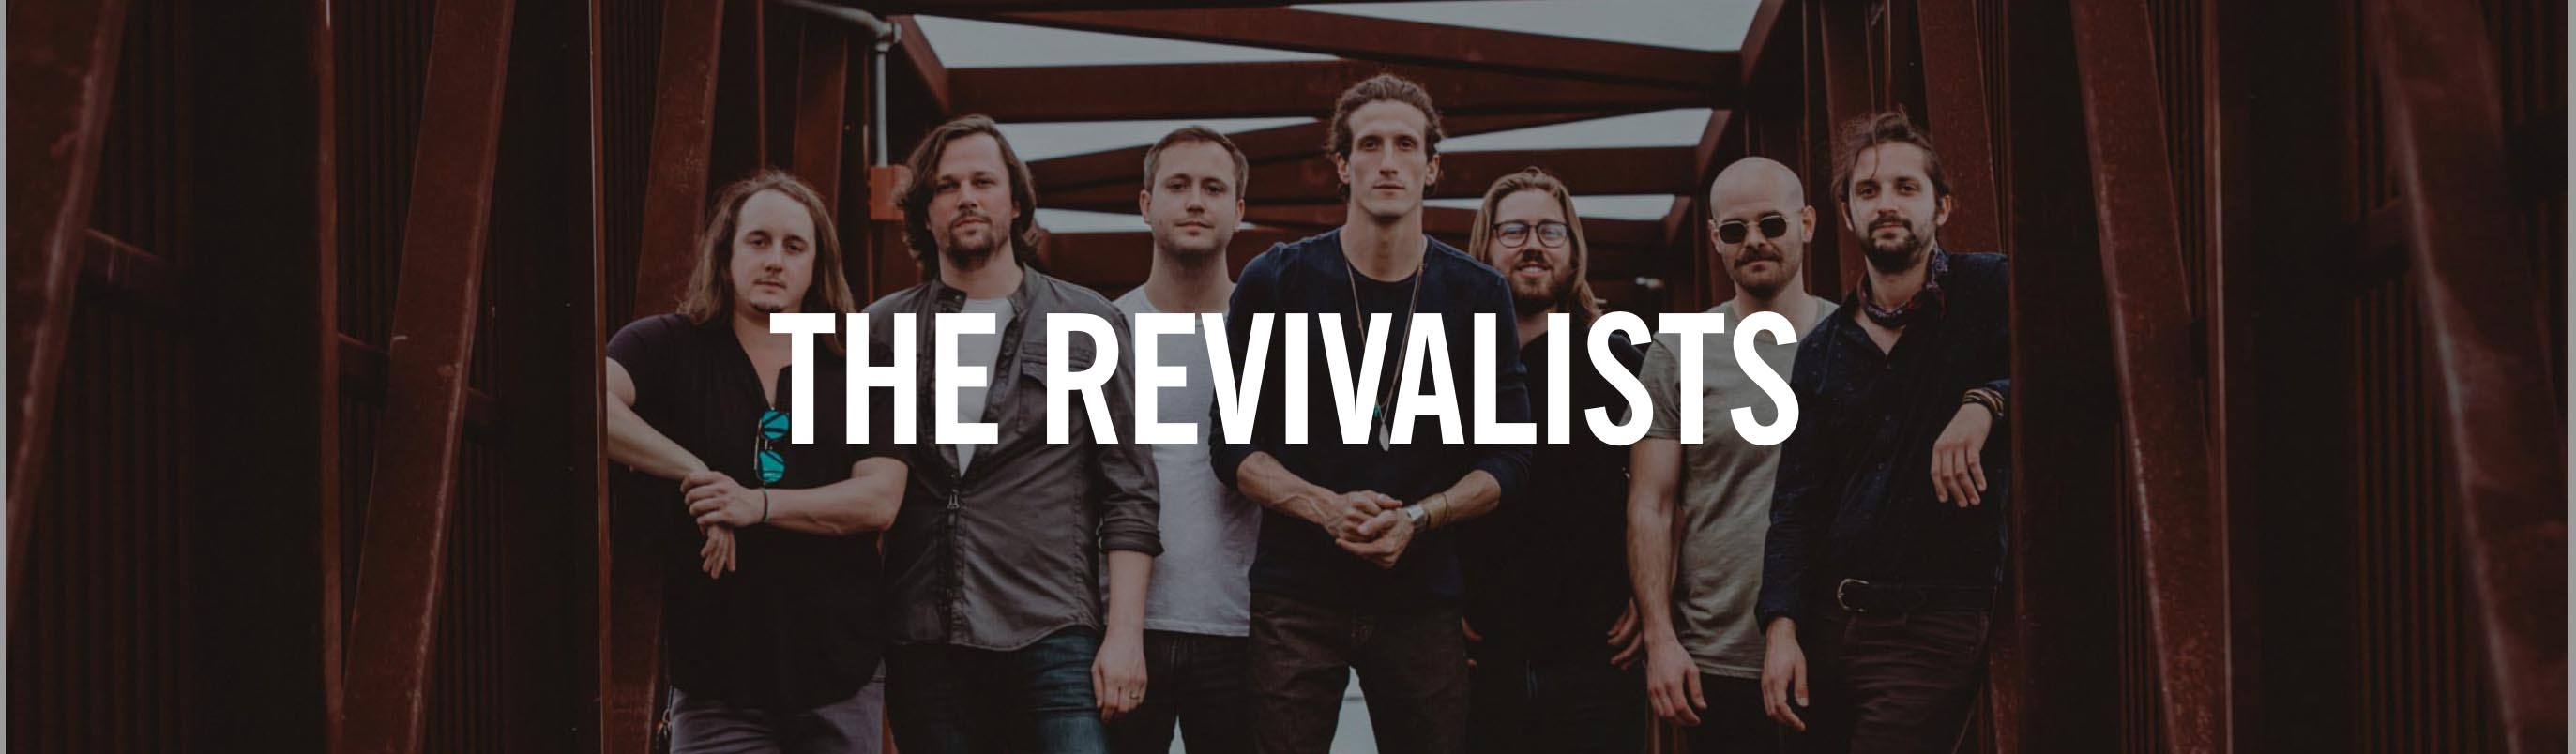 Extra Image mob The Revivalists